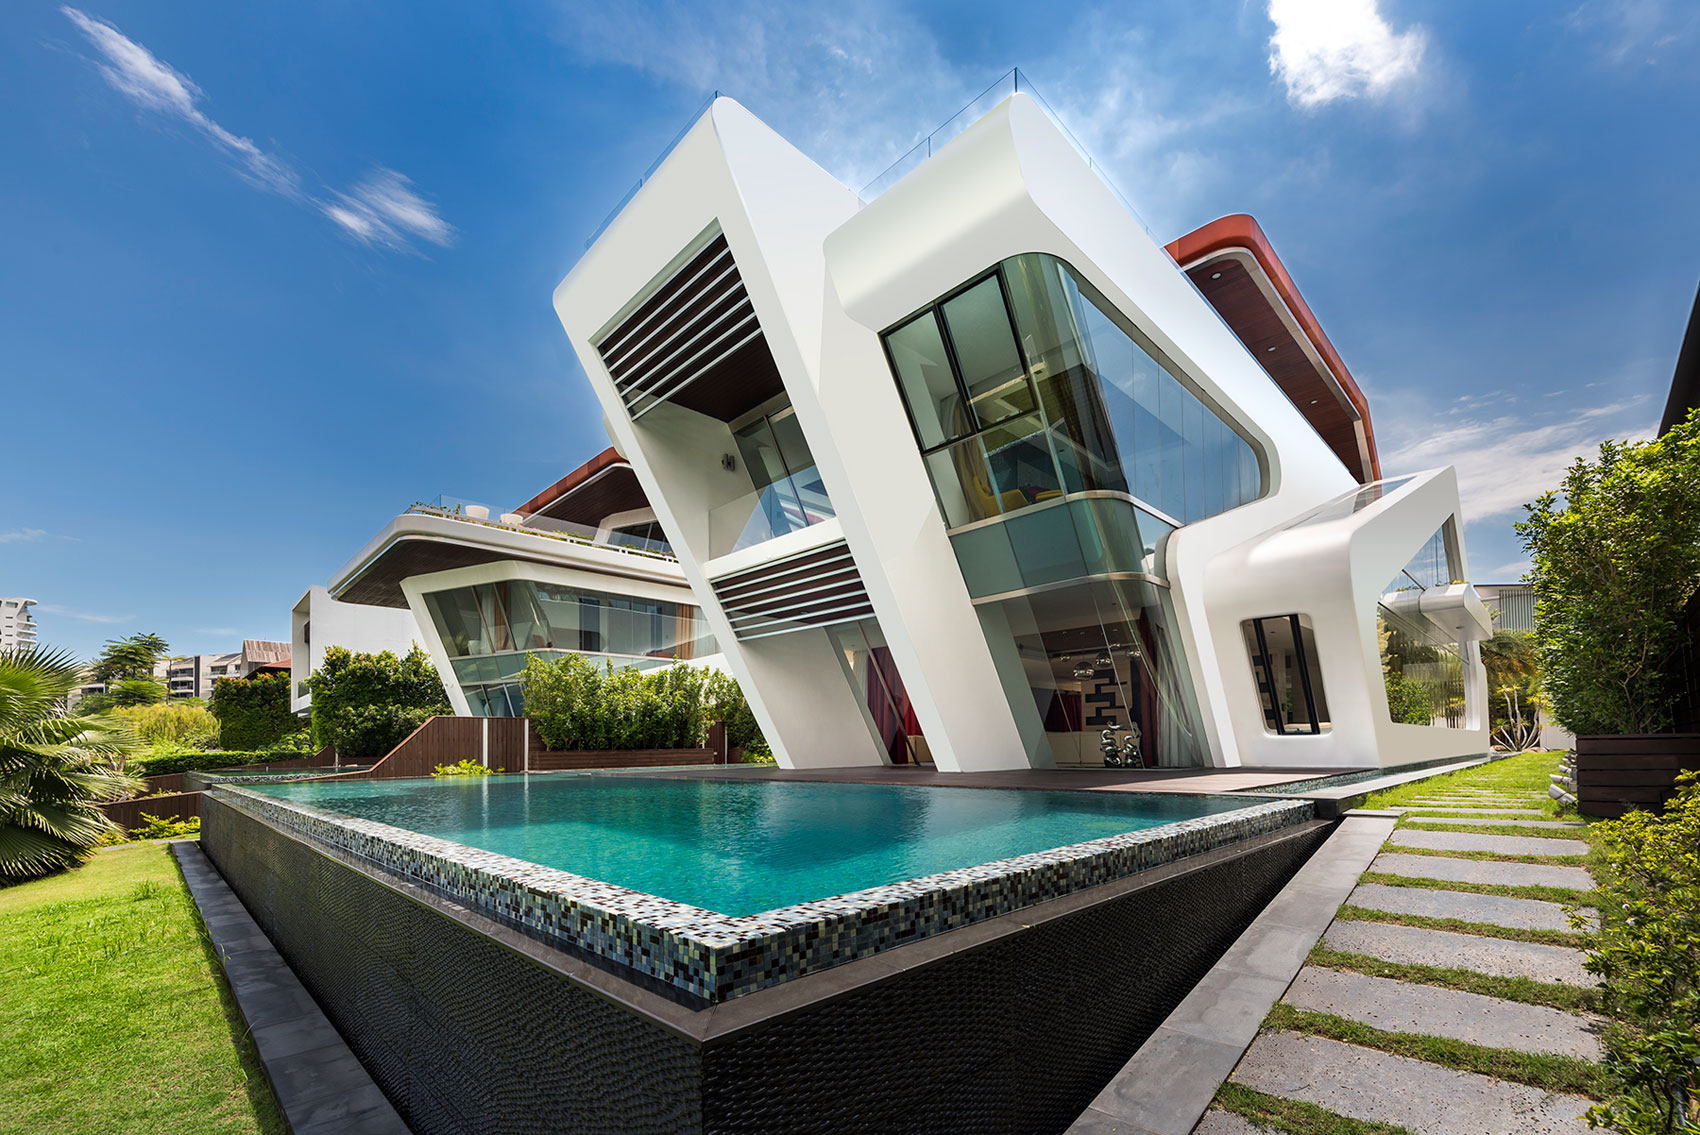 Mercurio design lab create a modern villa in singapore for Beautiful villa design